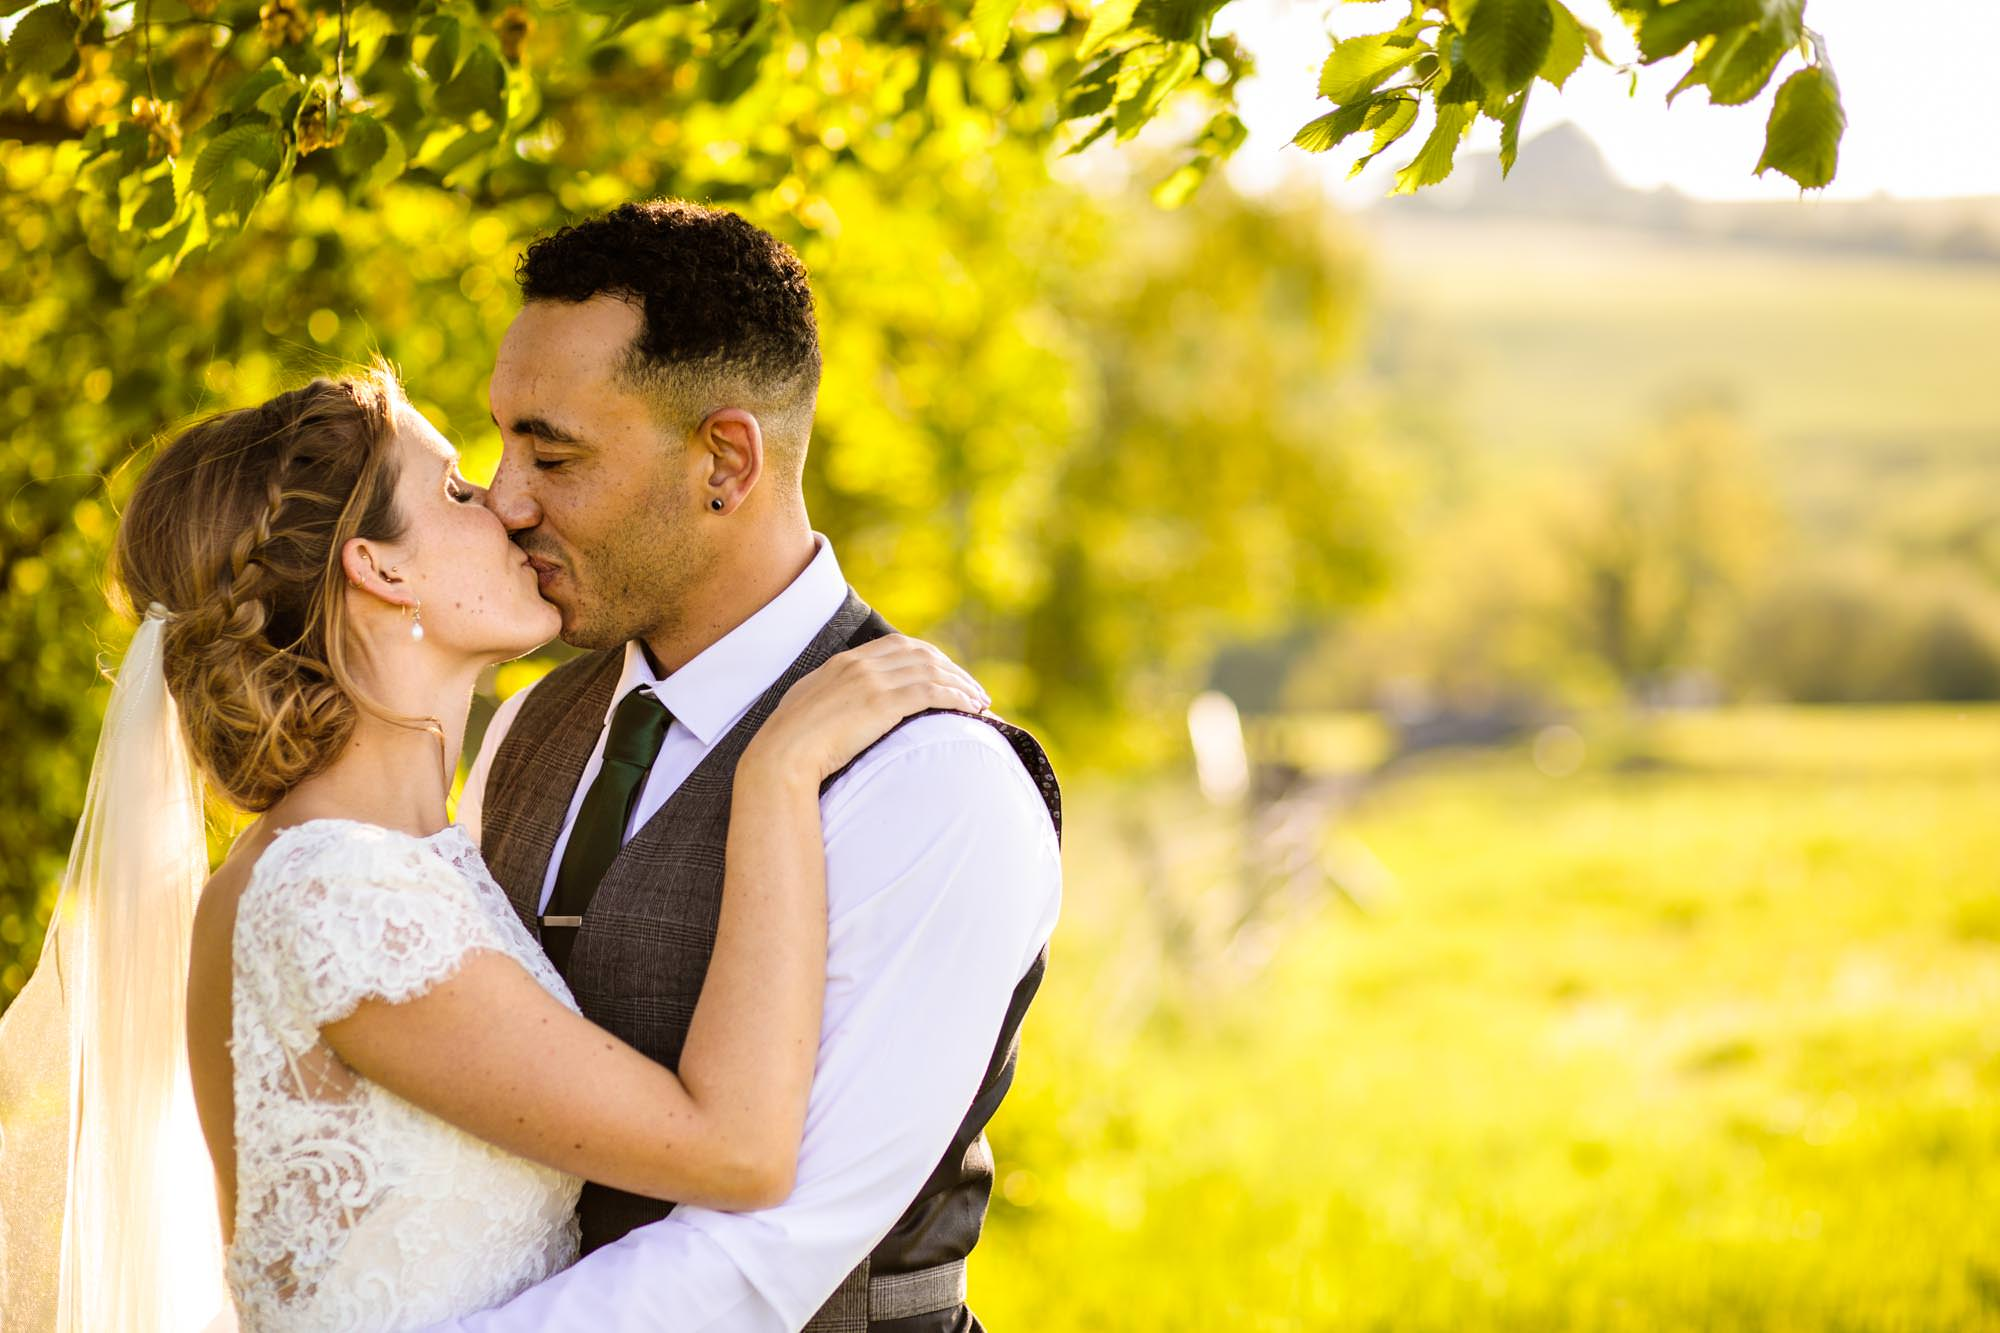 Wedding Photographer Thornsett Fields Farm